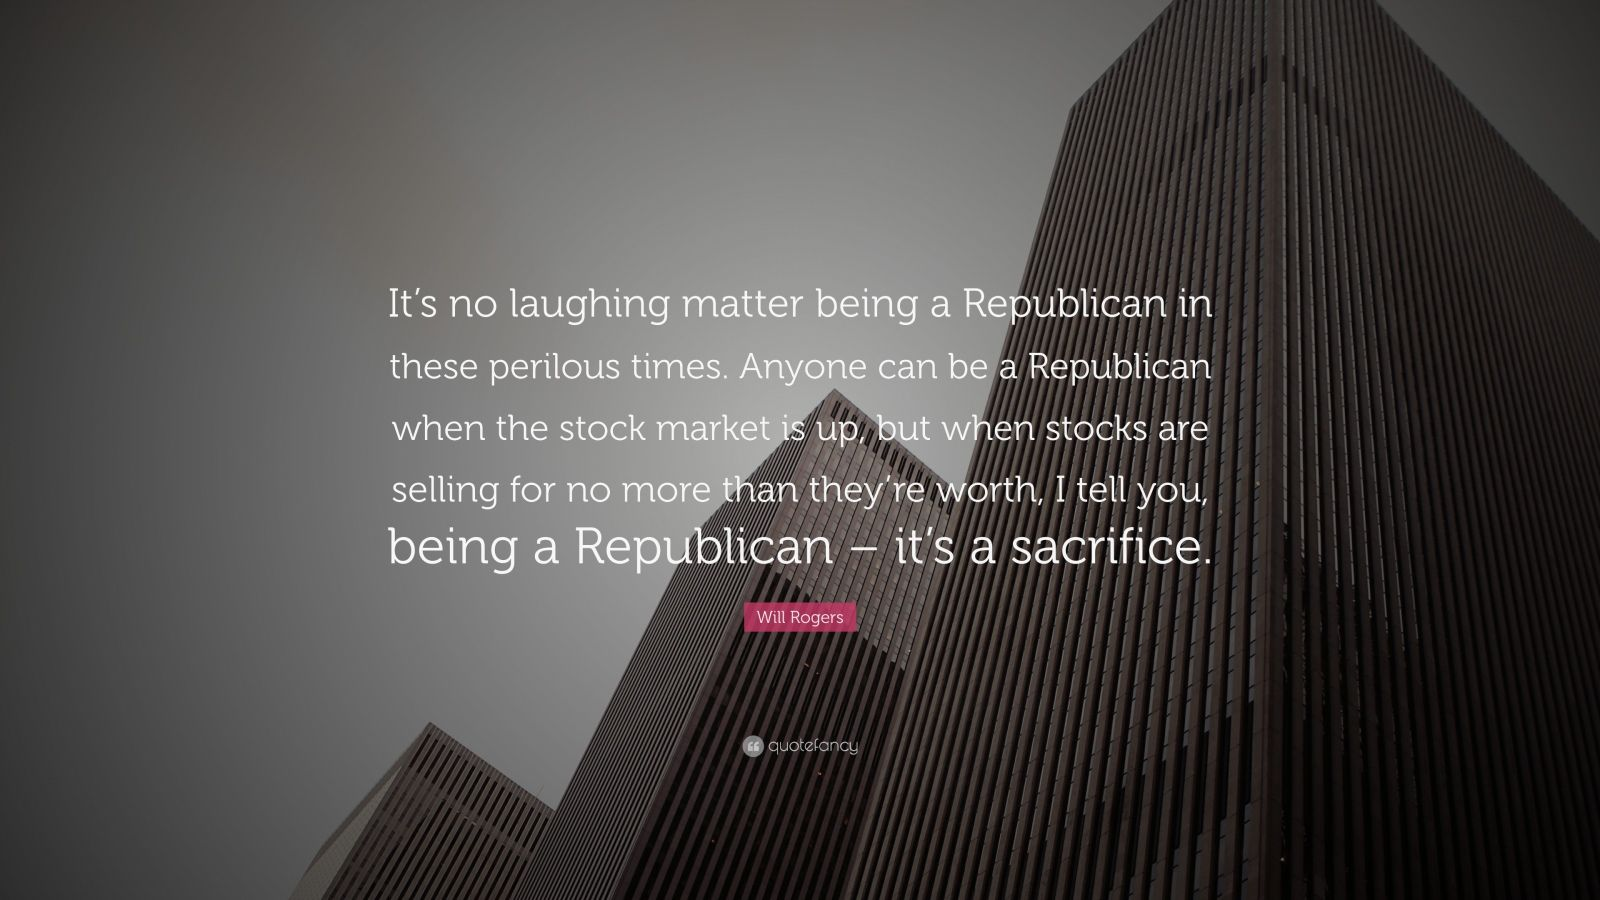 """Will Rogers Quote: """"It's no laughing matter being a Republican in these perilous times. Anyone can be a Republican when the stock market is up, but when stocks are selling for no more than they're worth, I tell you, being a Republican – it's a sacrifice."""""""